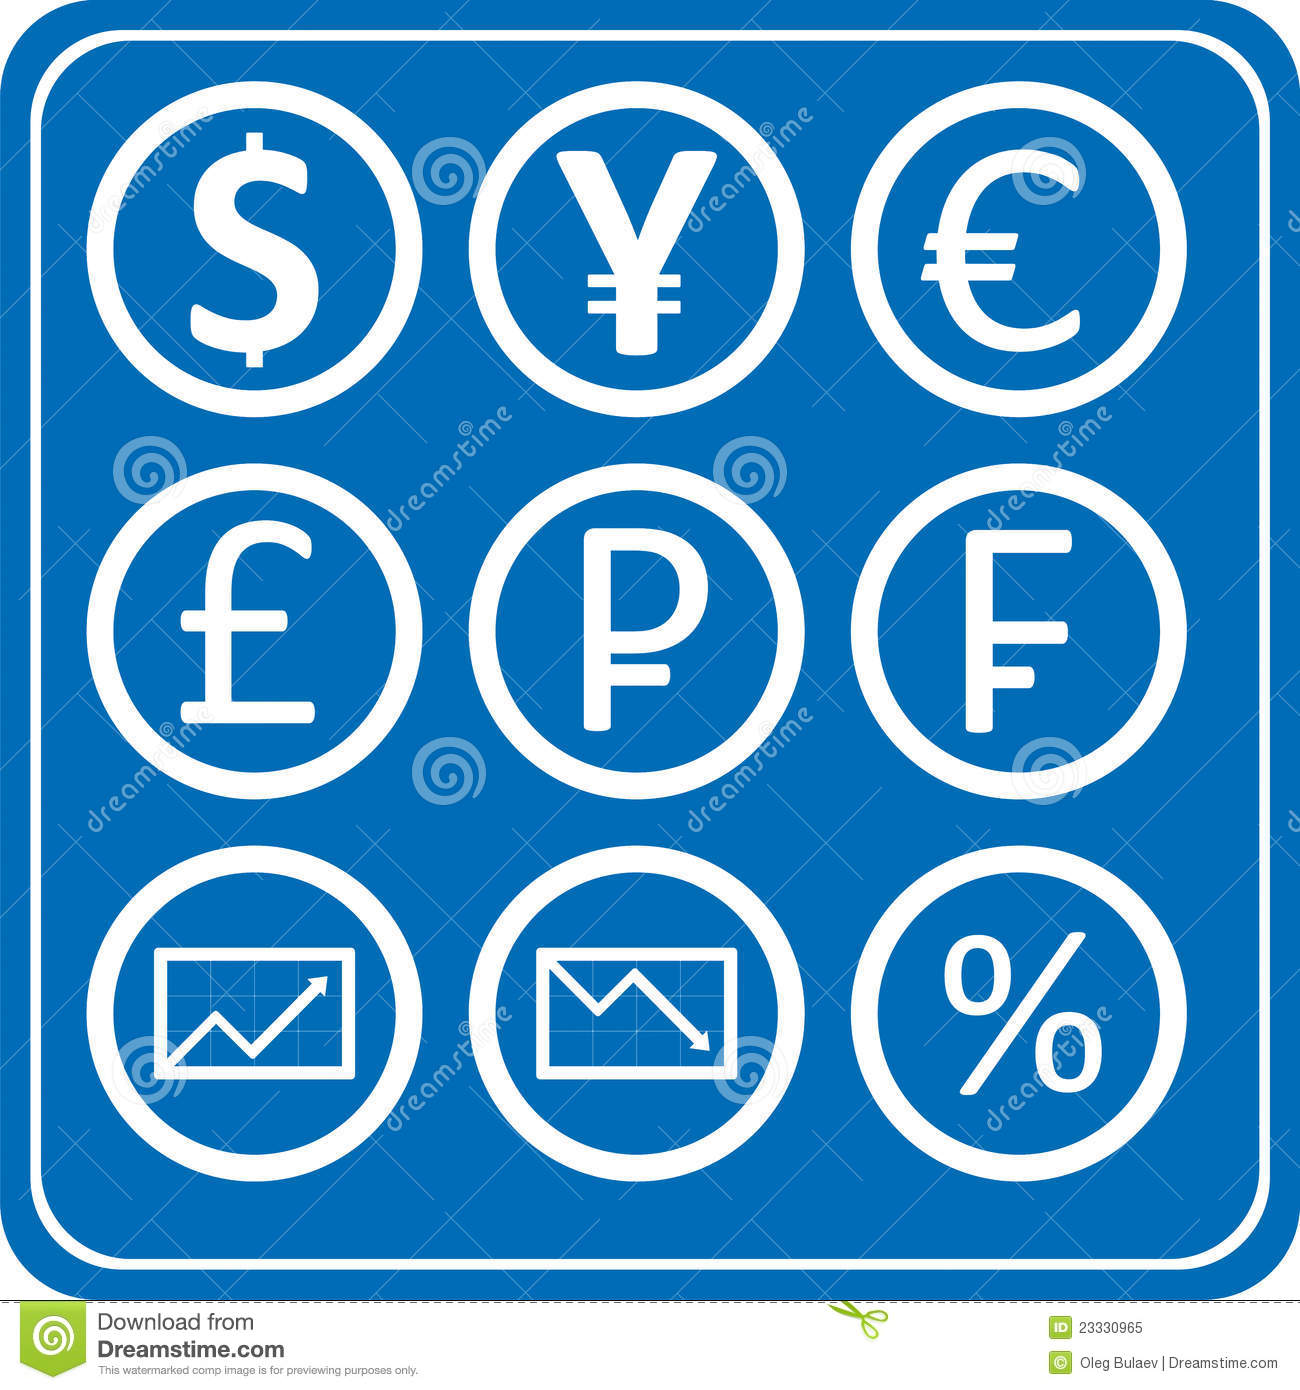 Forex icon download